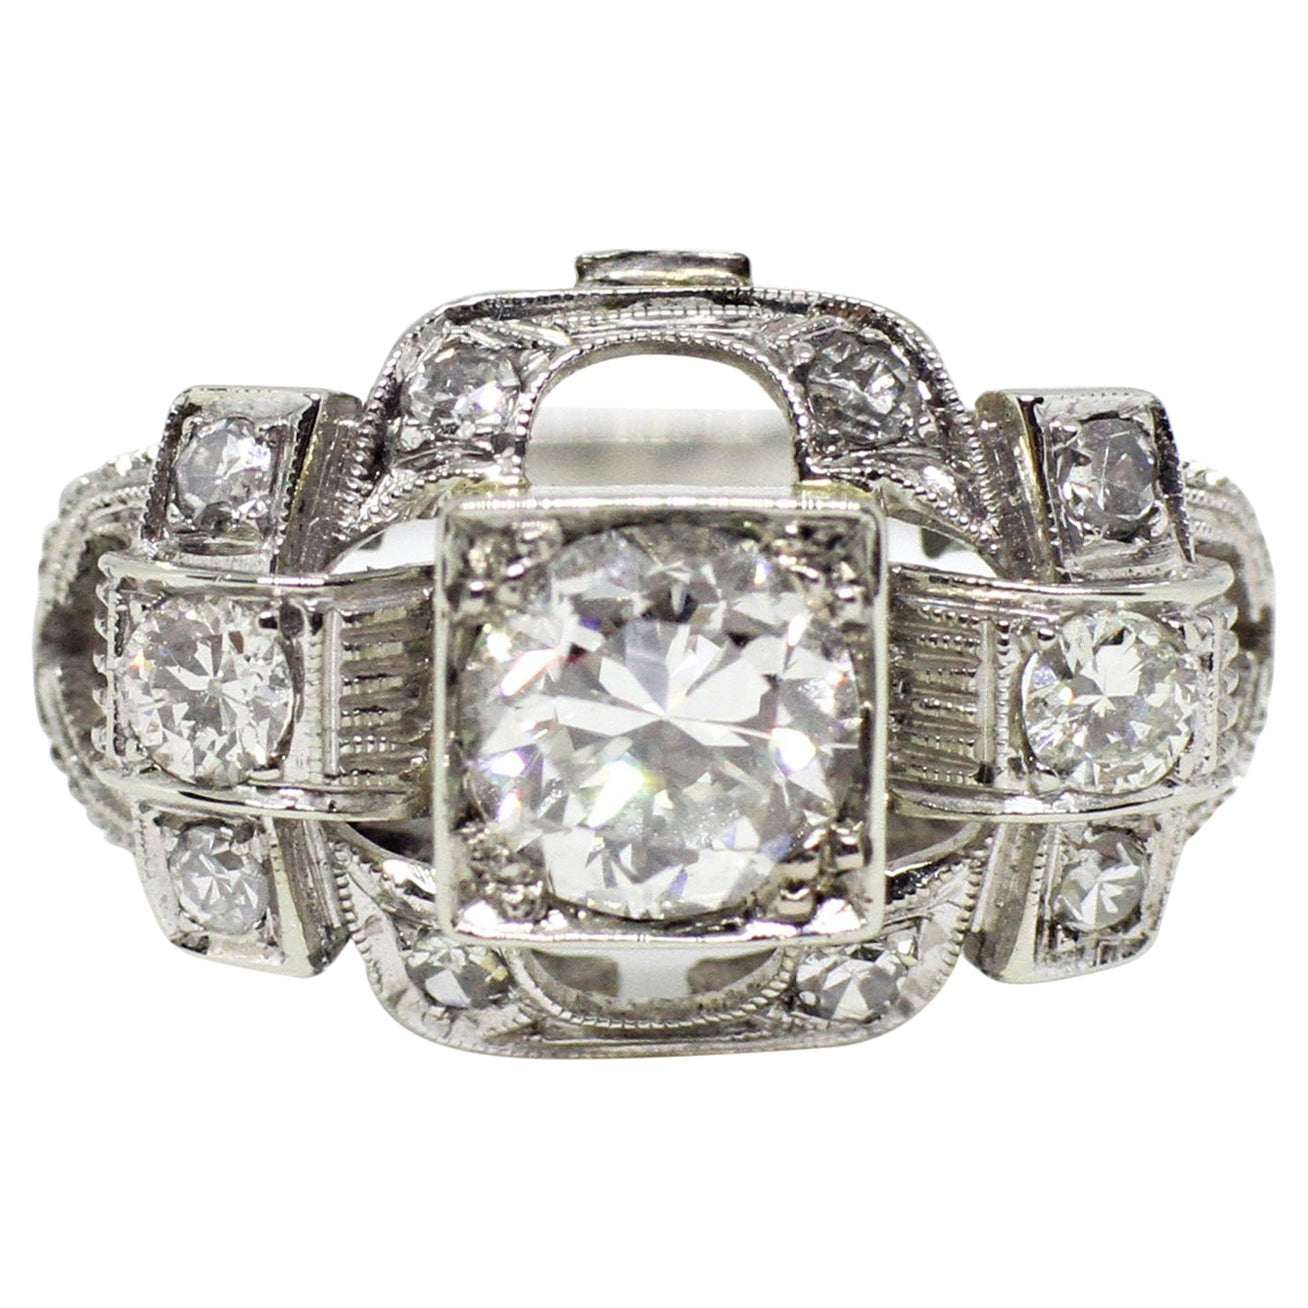 0.80 Carat Old Cut Diamond Art Deco Platinum Engagement Ring, circa 1930s